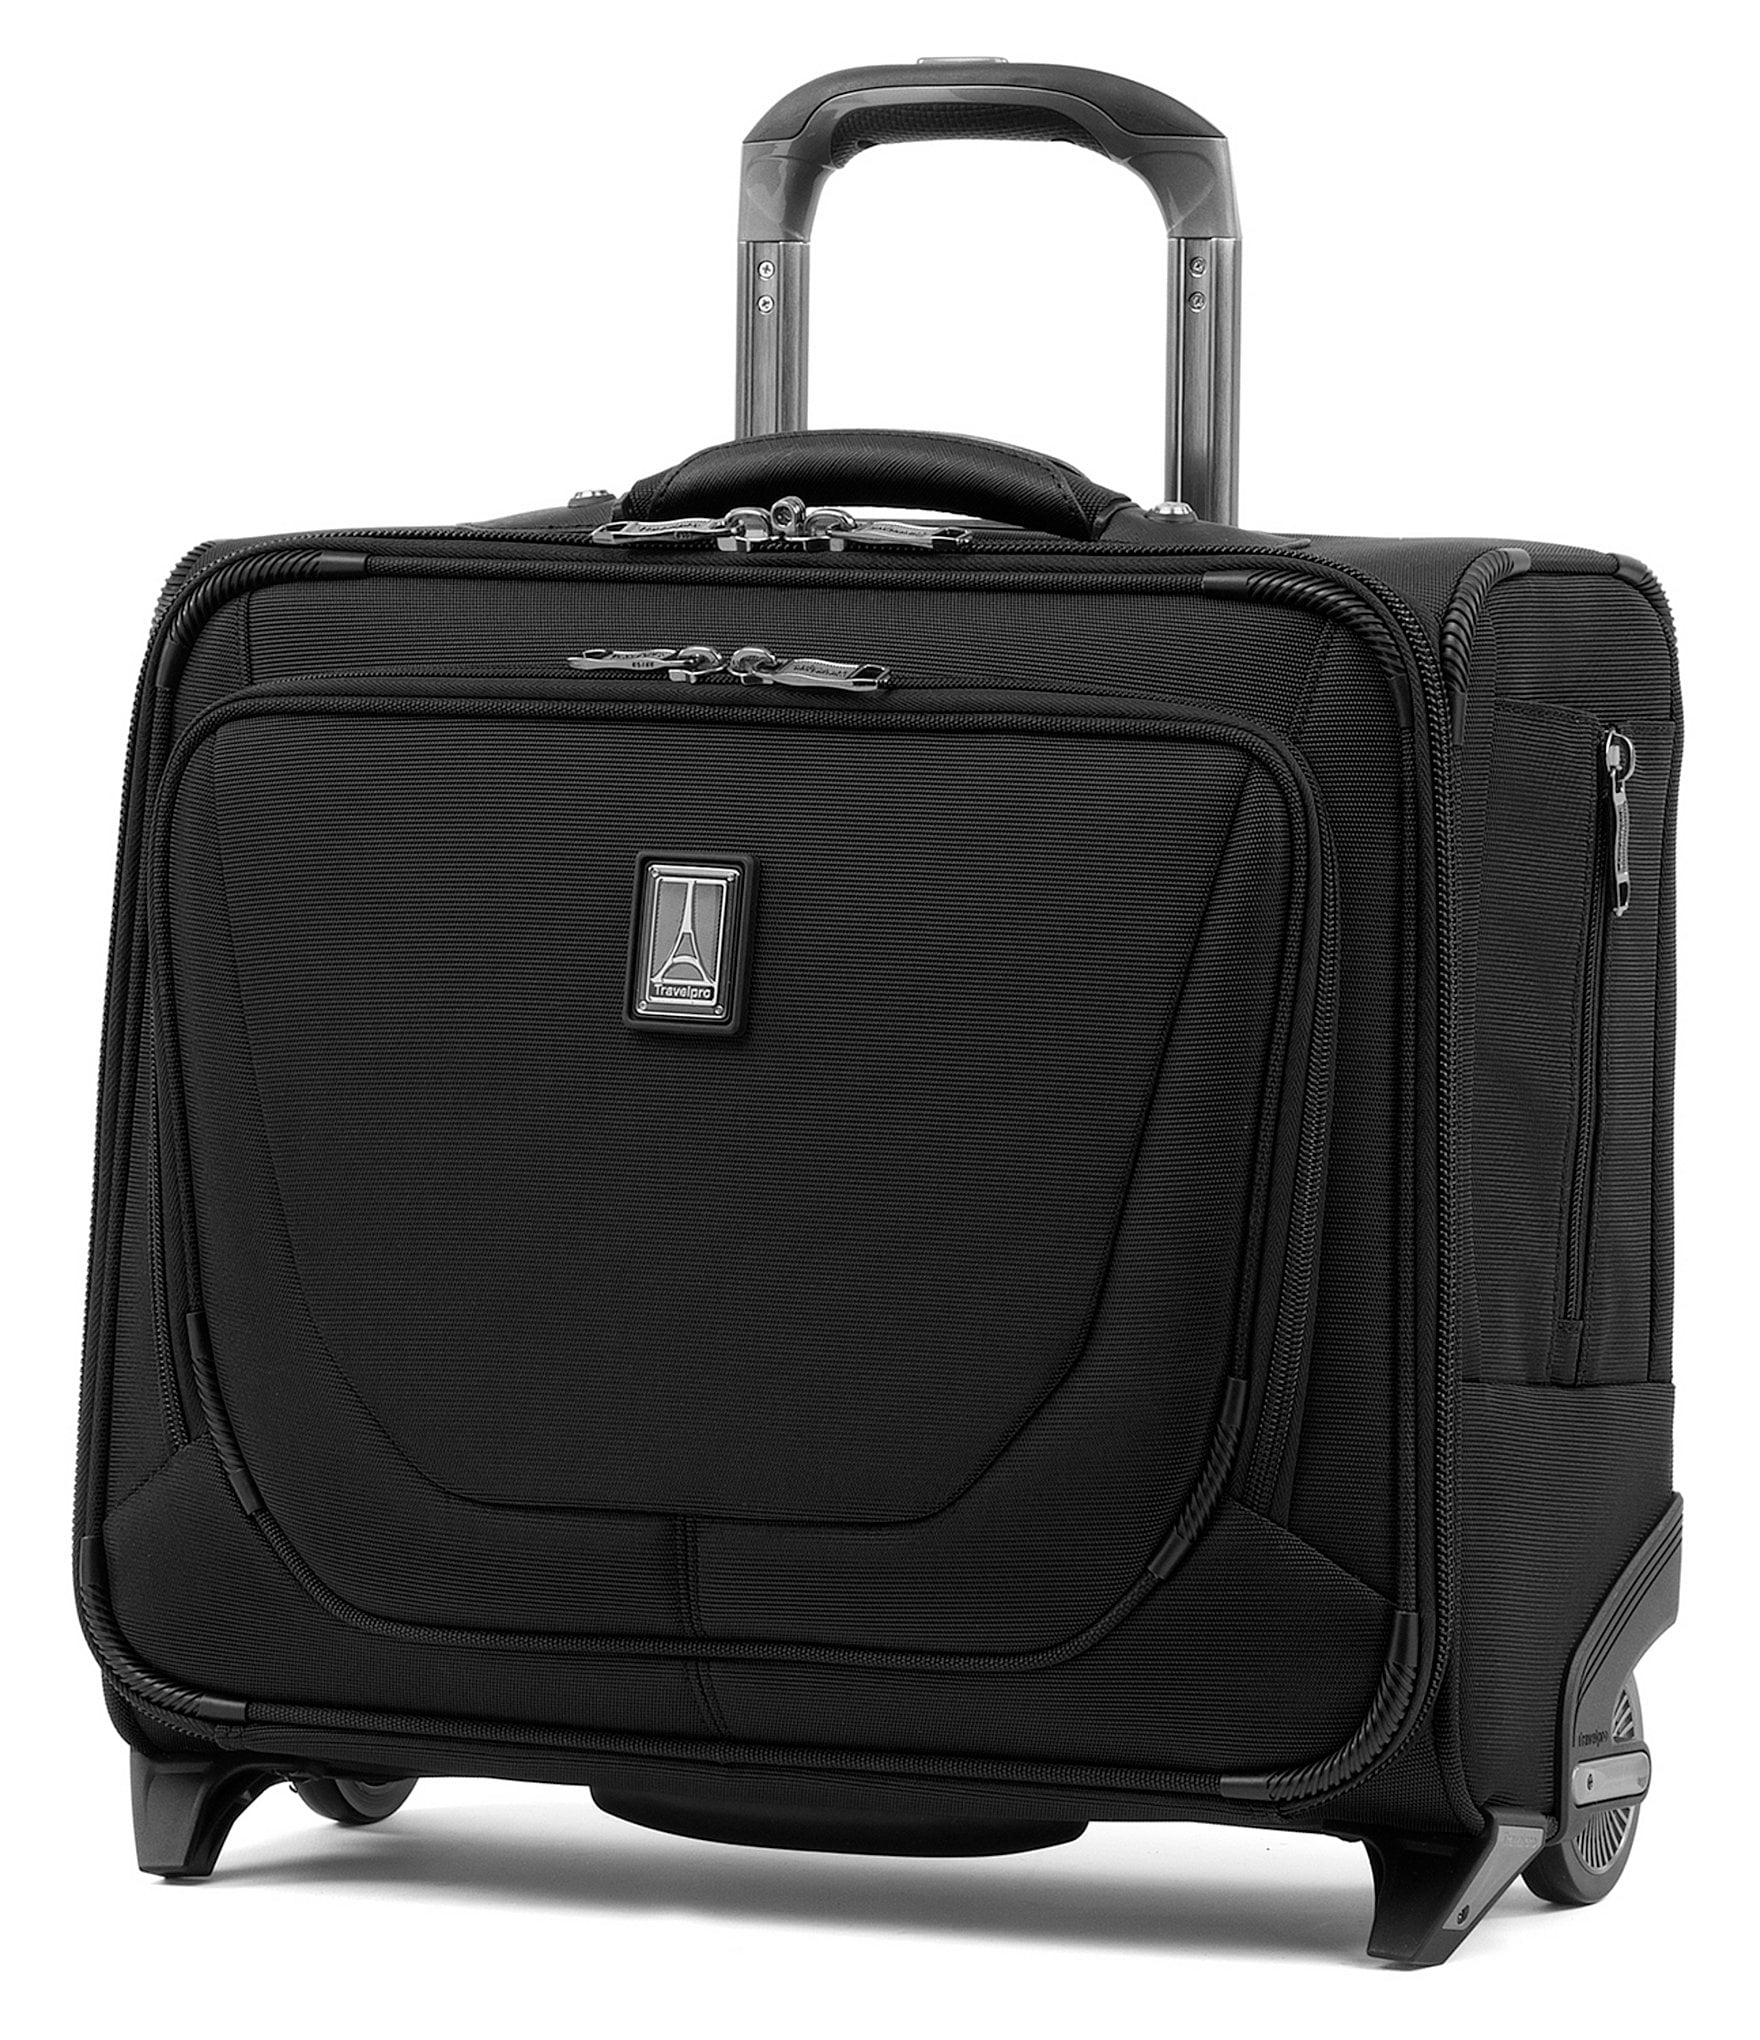 Travelpro Crew 11 Collection Carry On Rolling Tote Dillards